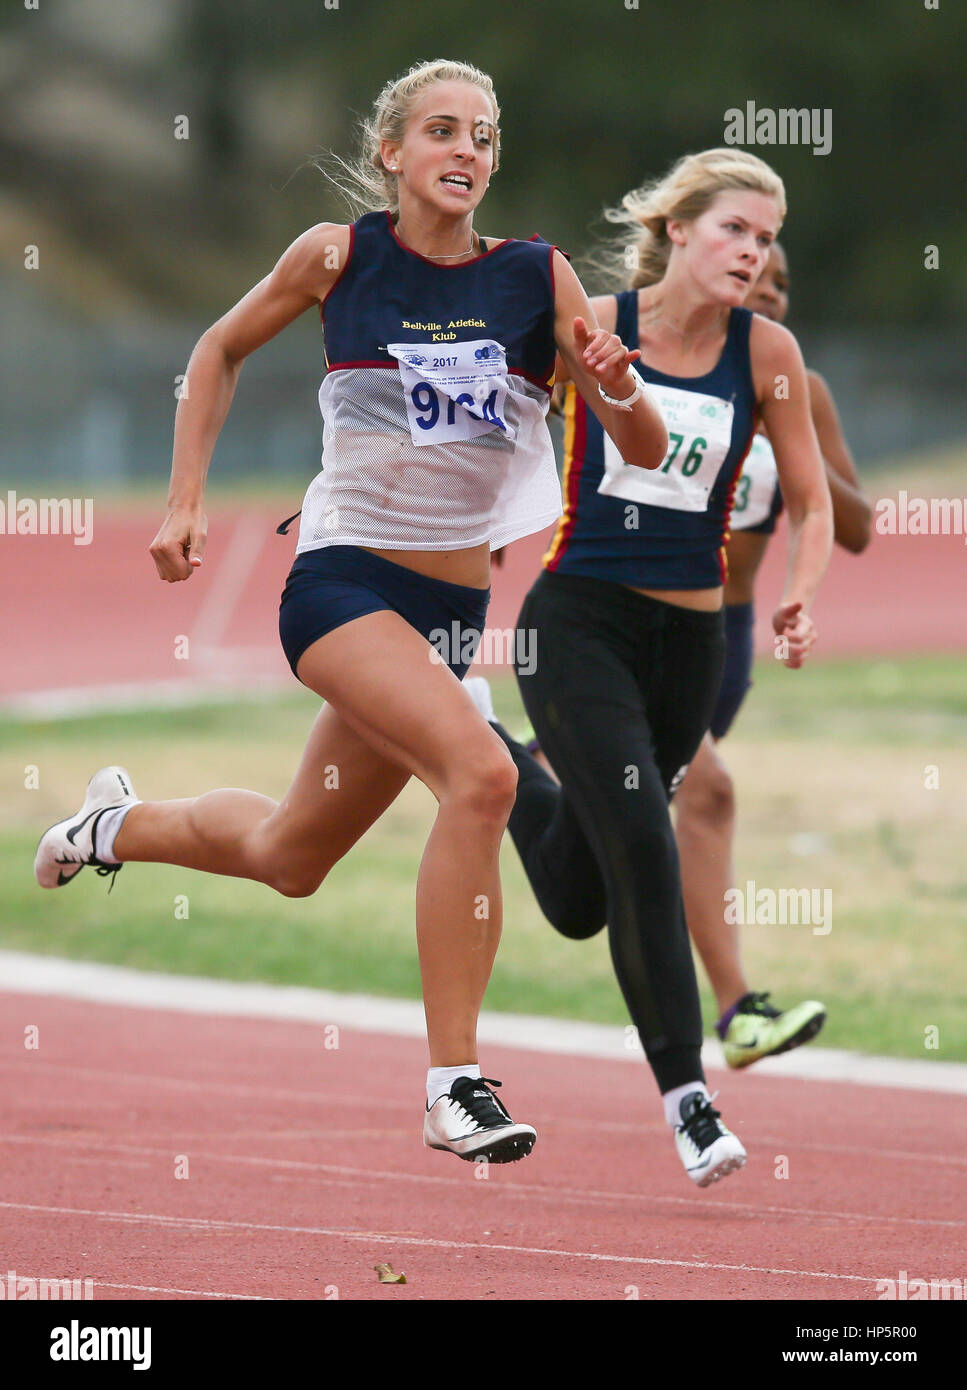 Cape Town, South Africa. 18th February, 2017.  during the second WP Athletics League track and field meeting at - Stock Image